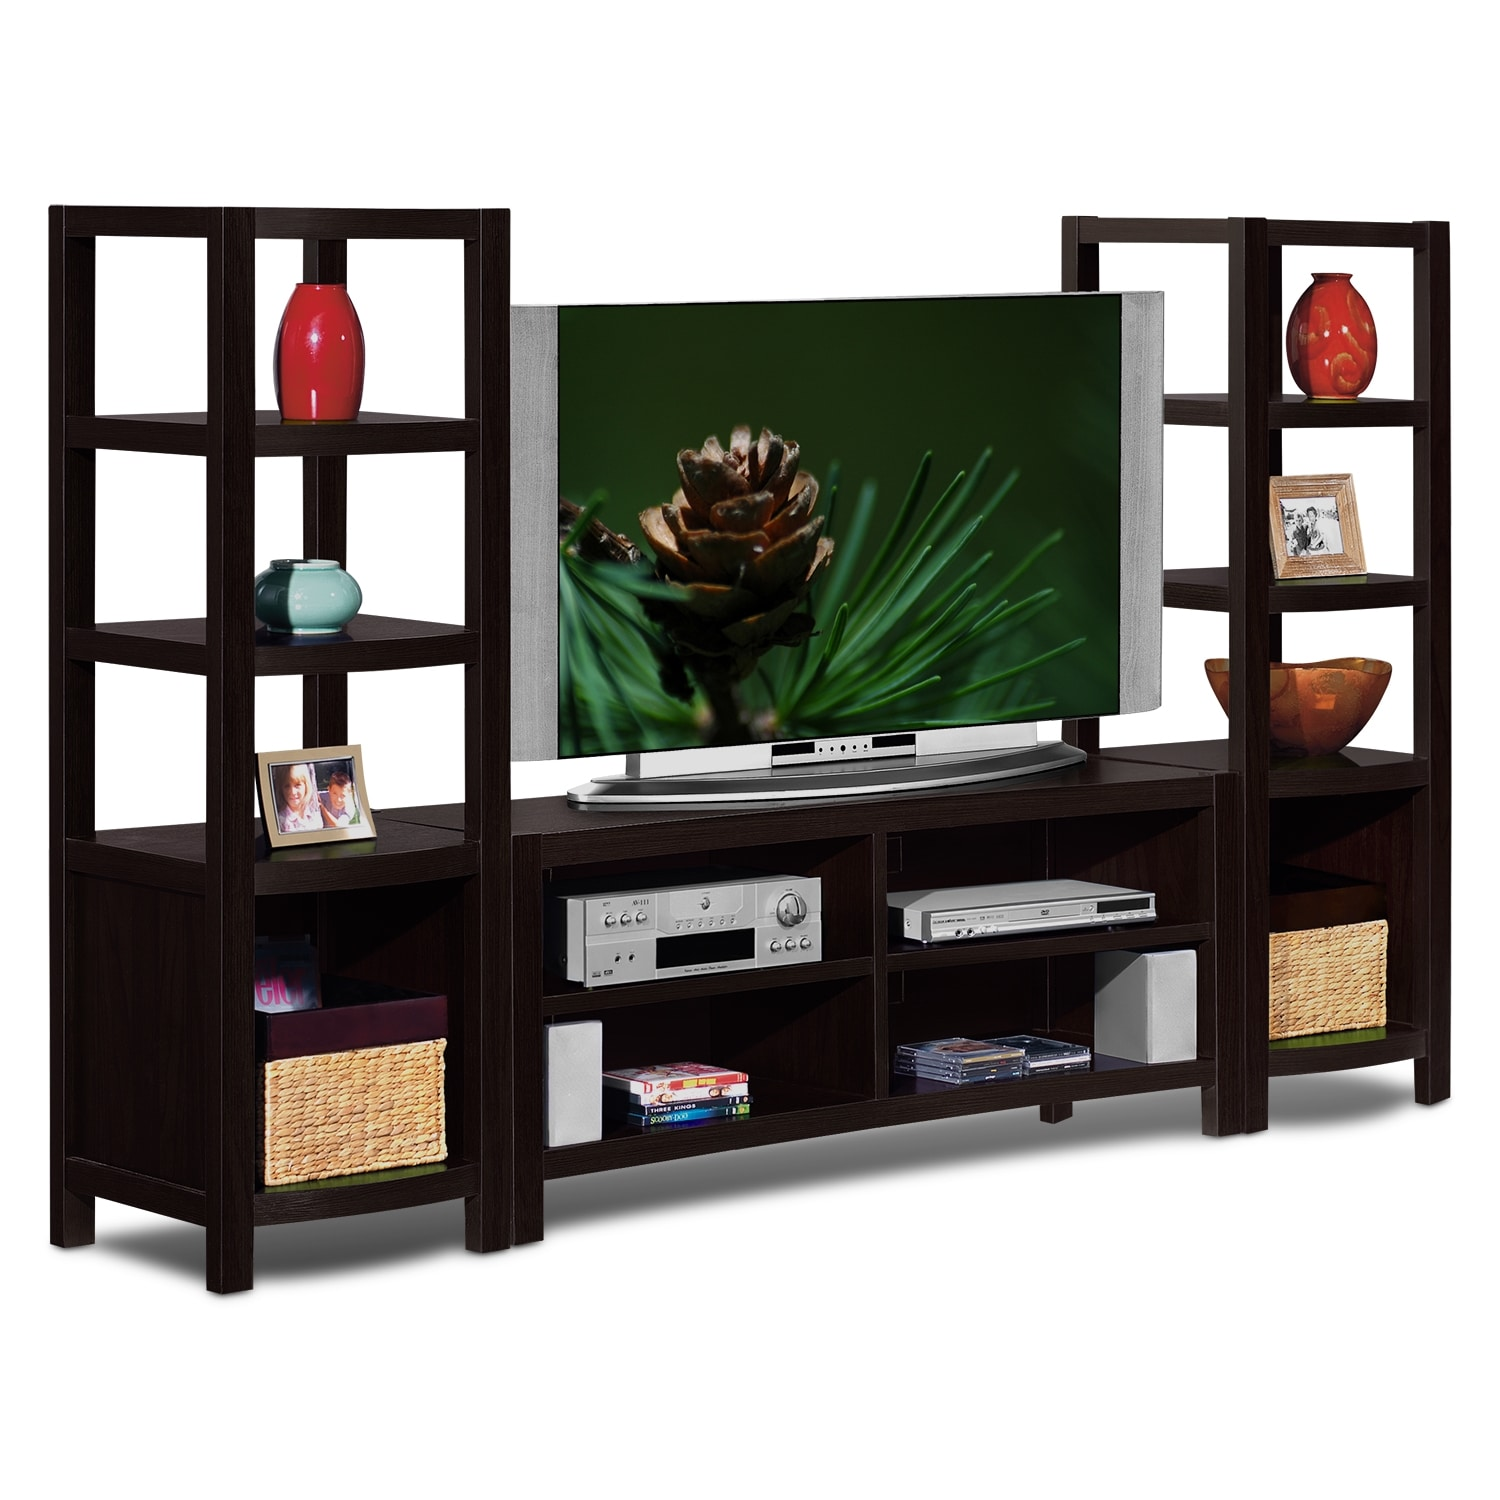 Townsend 3-Piece Entertainment Wall Unit - Merlot